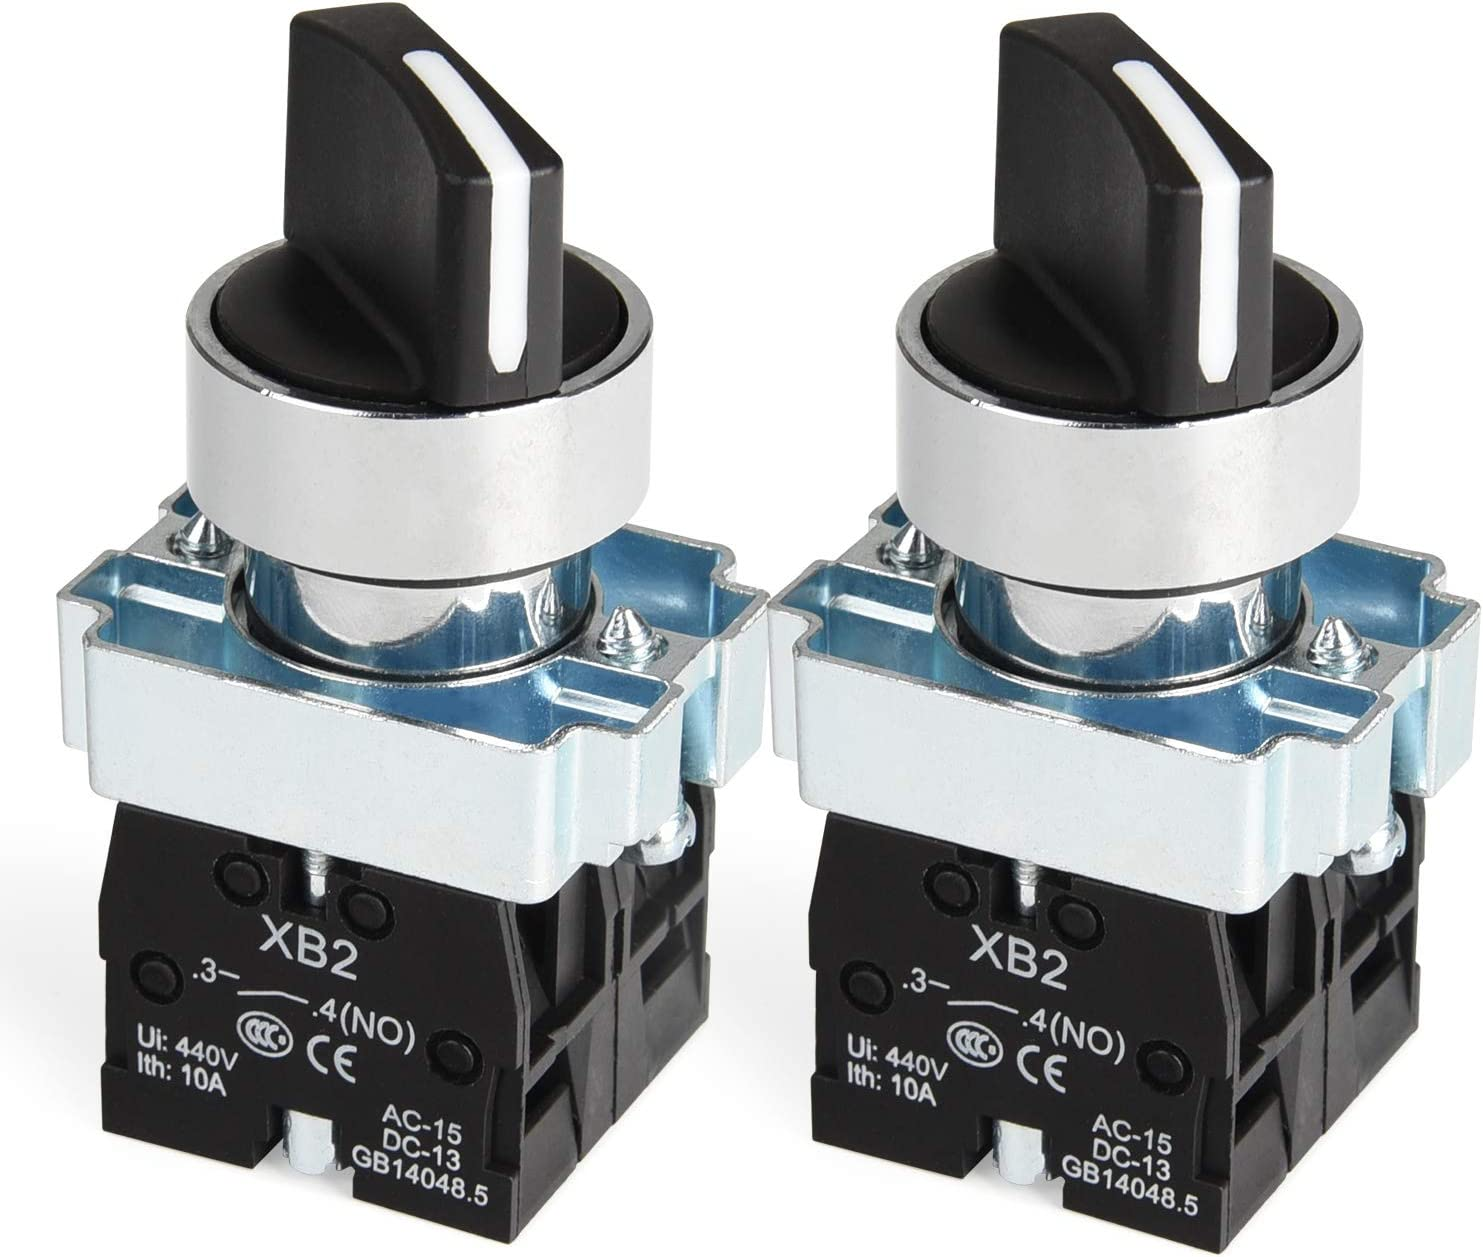 Momentary Popular products Selector Switch Max 41% OFF 22mm 2NO XB2-20X APIELE 2 of 3 Pack 33